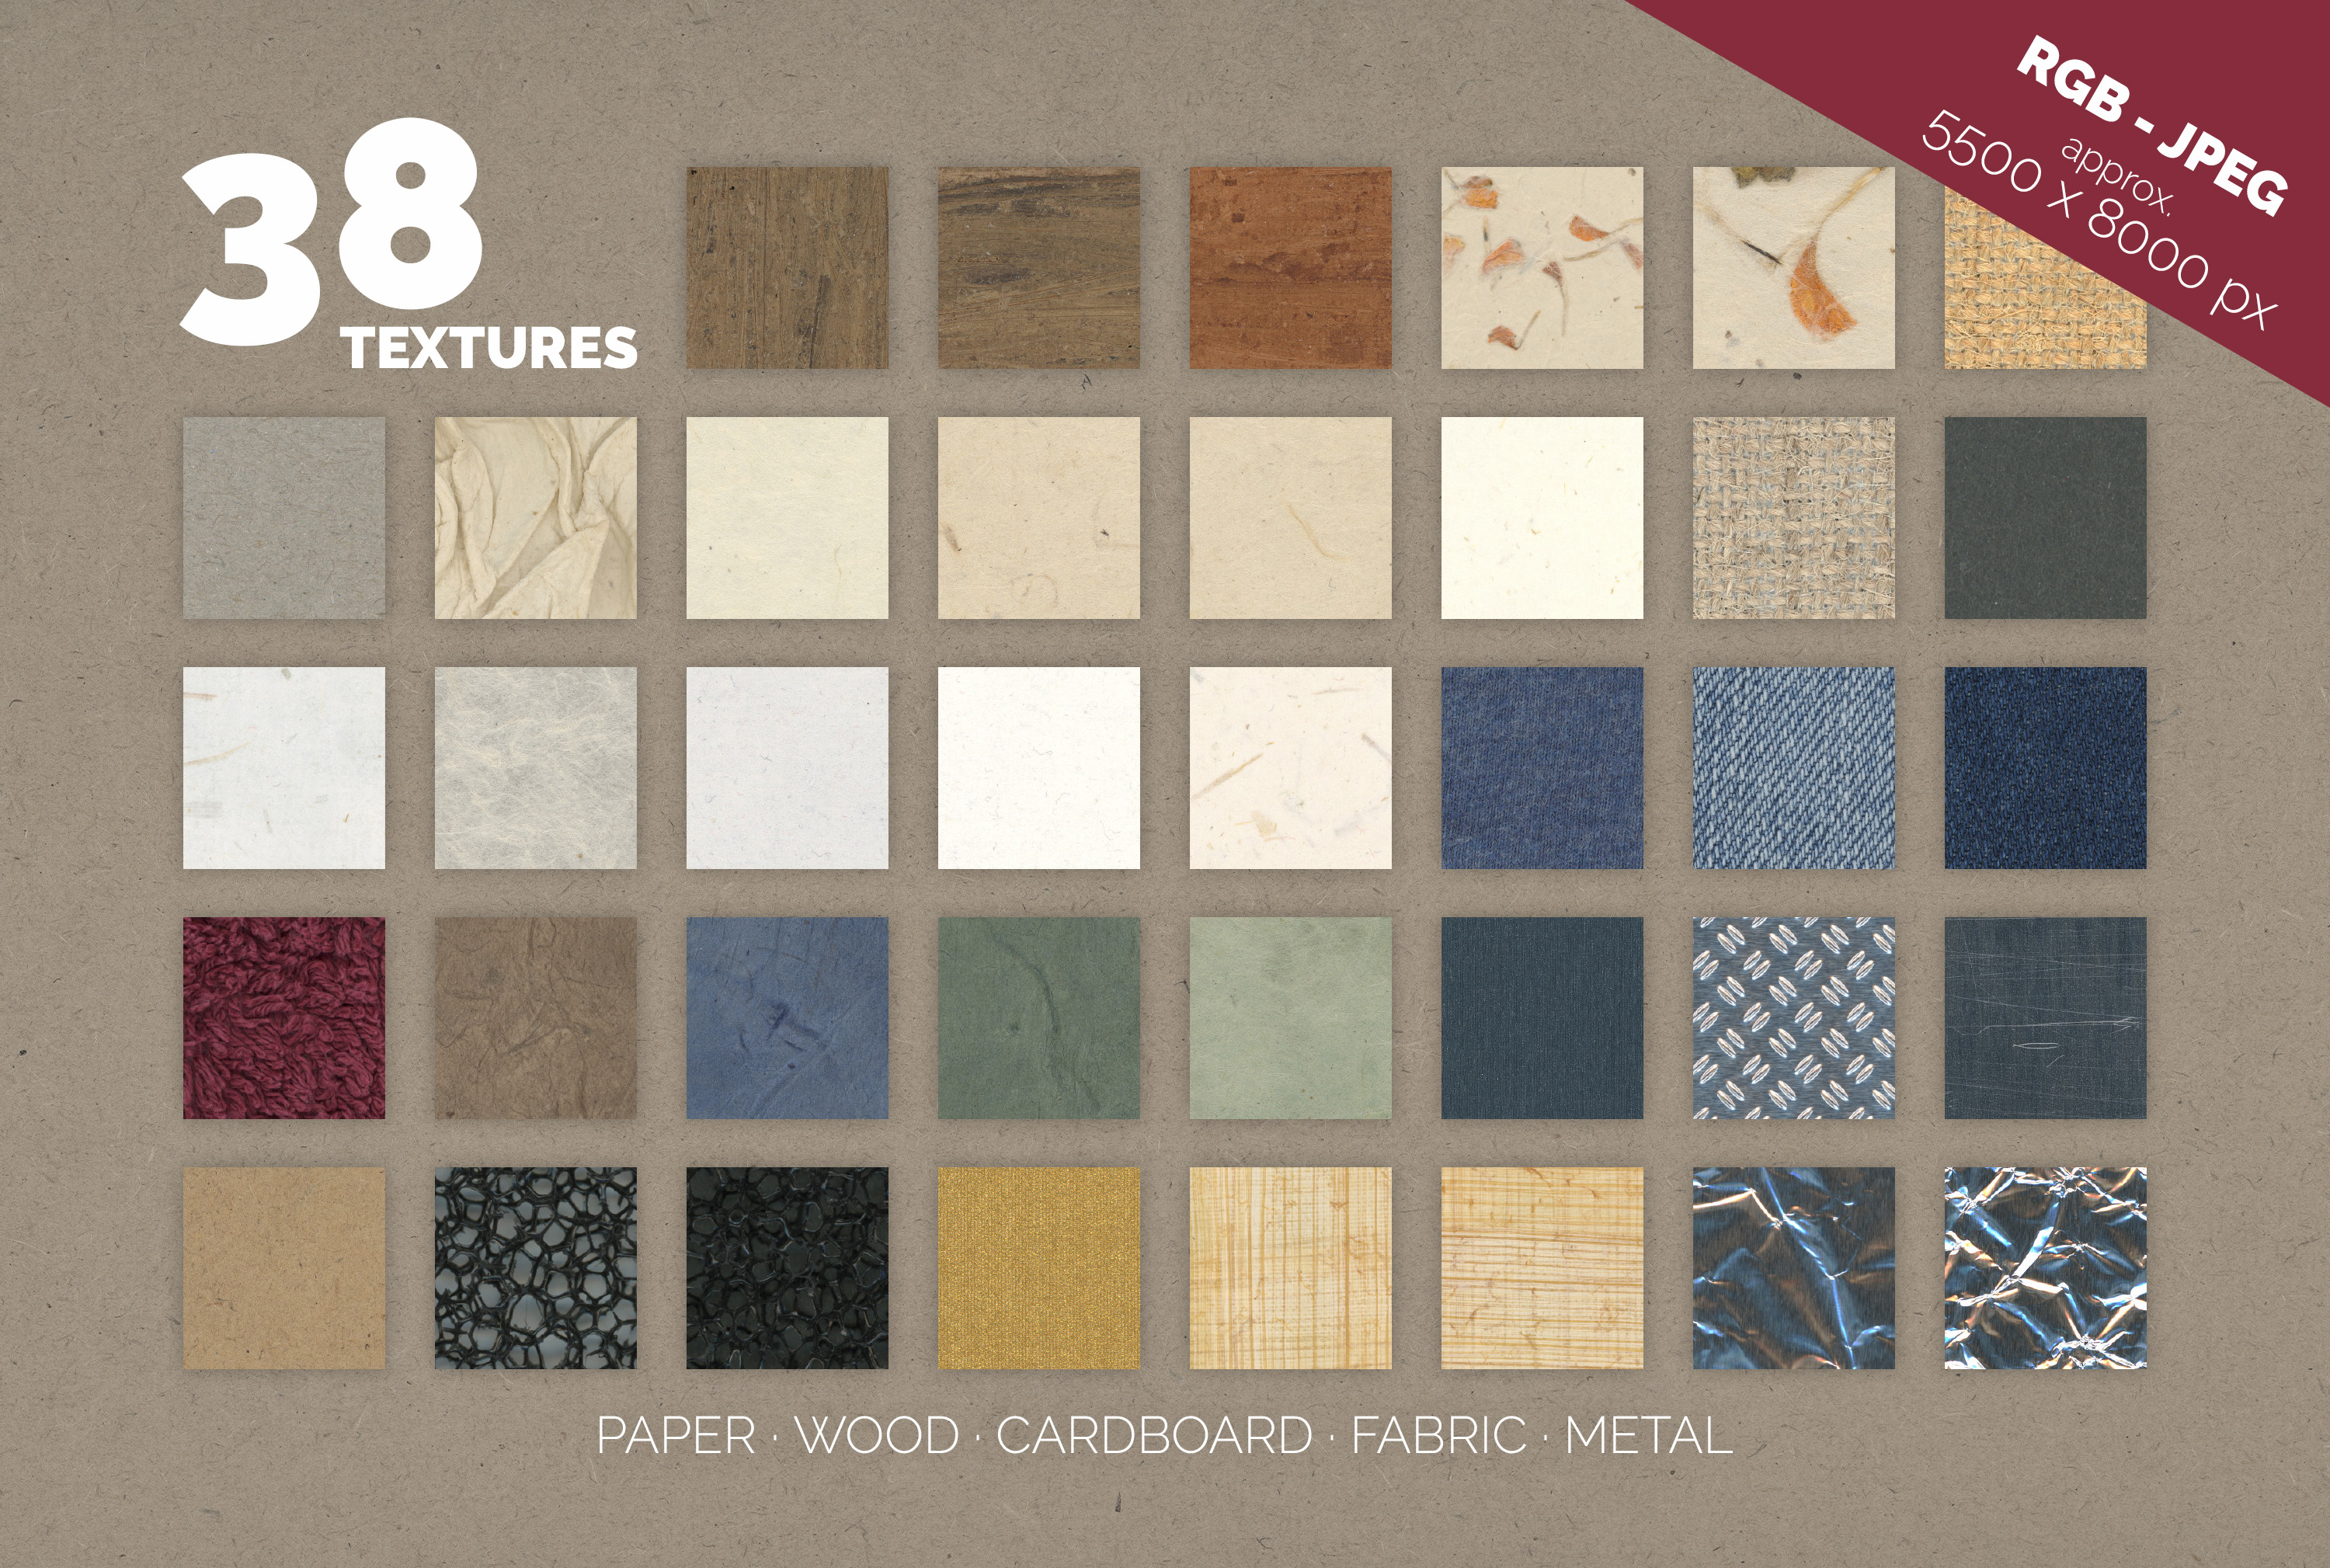 38 Natural Textures example image 4